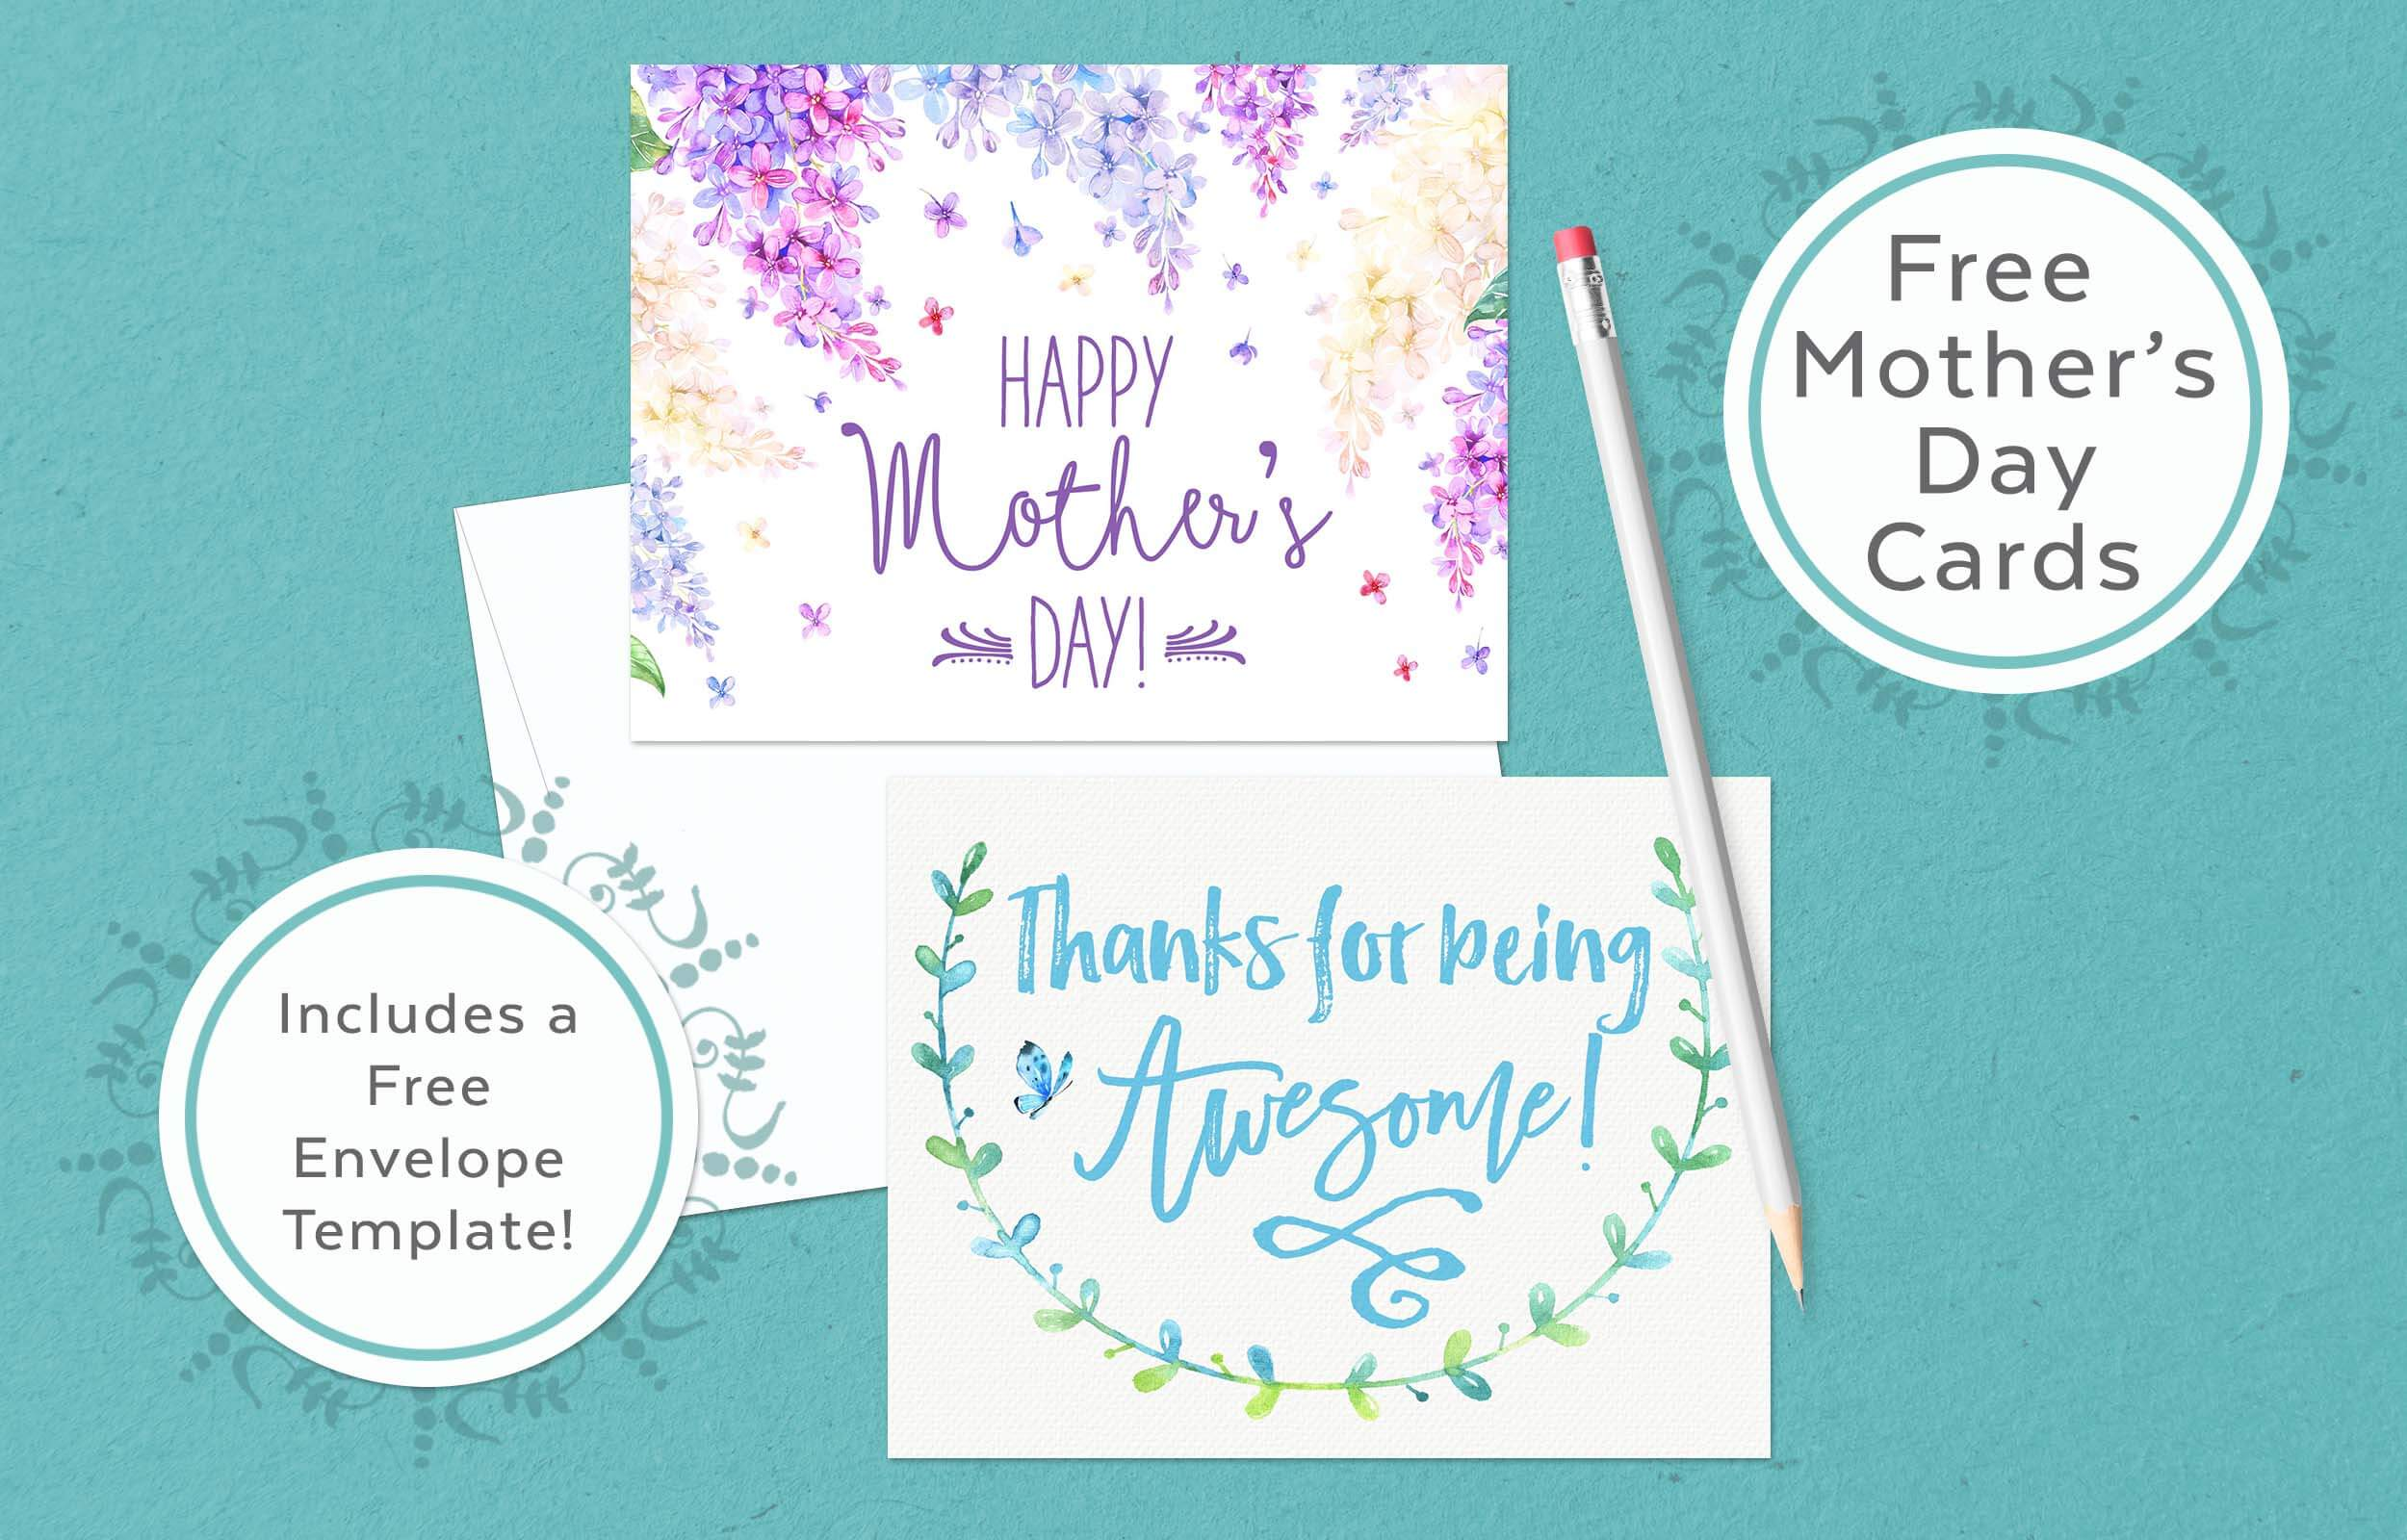 Mother's Day Cards (& Envelope Template!)